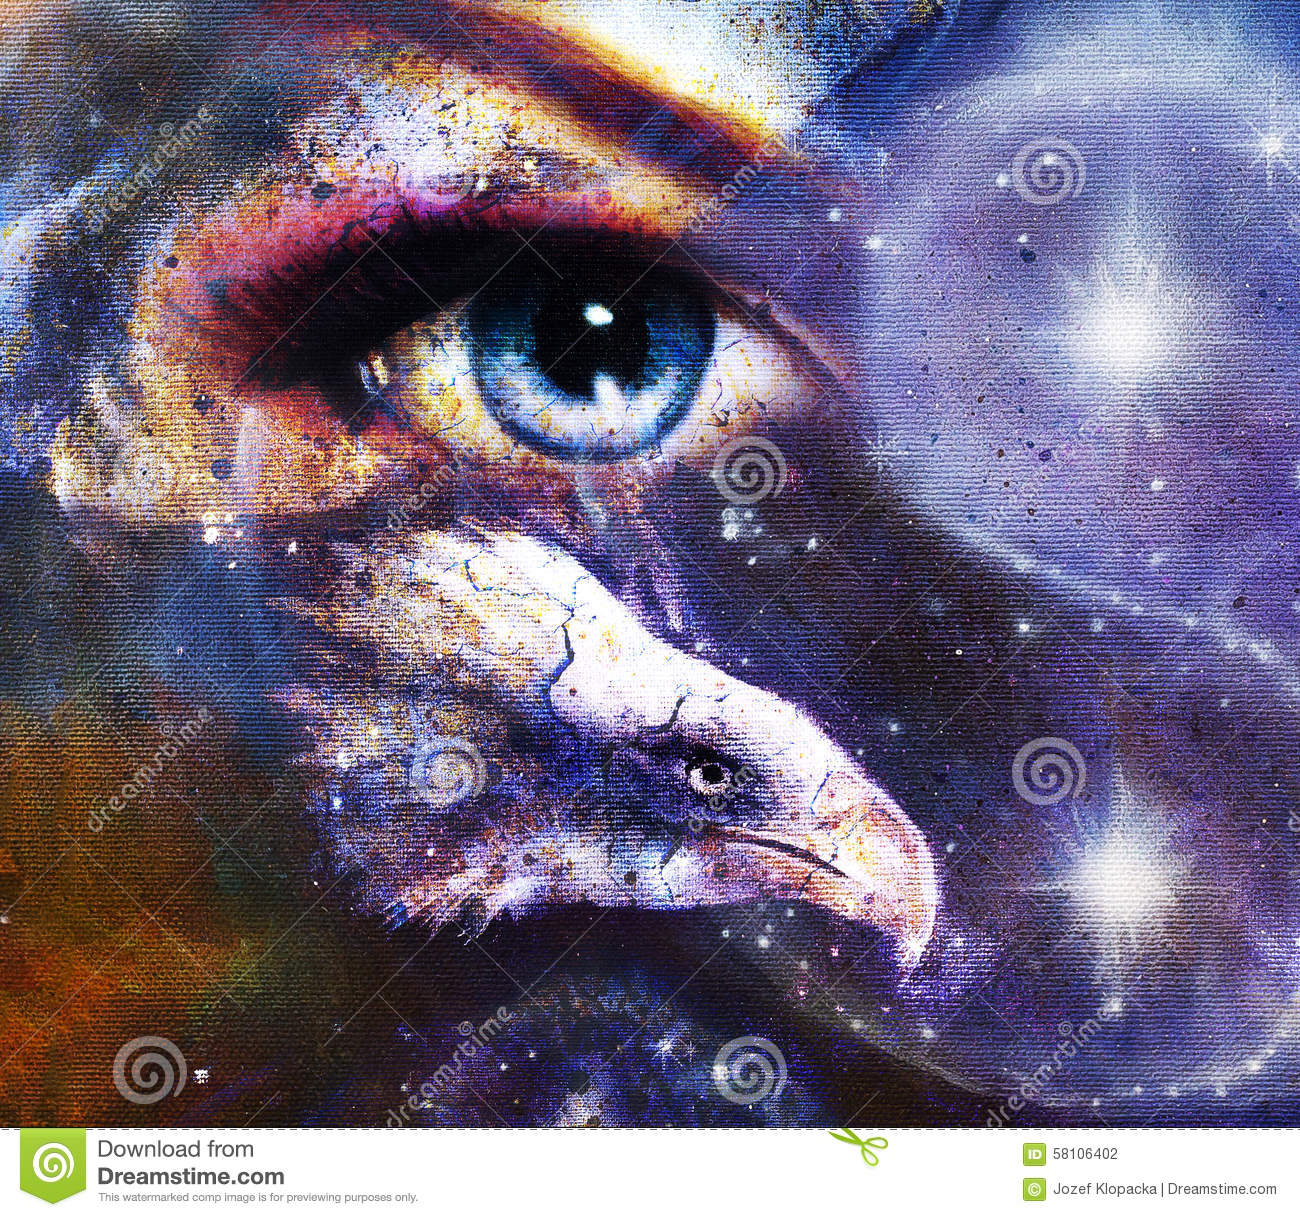 painting eagle with woman eye on abstract background and ying yang free vector logo Free Tree Vector Art Downloads